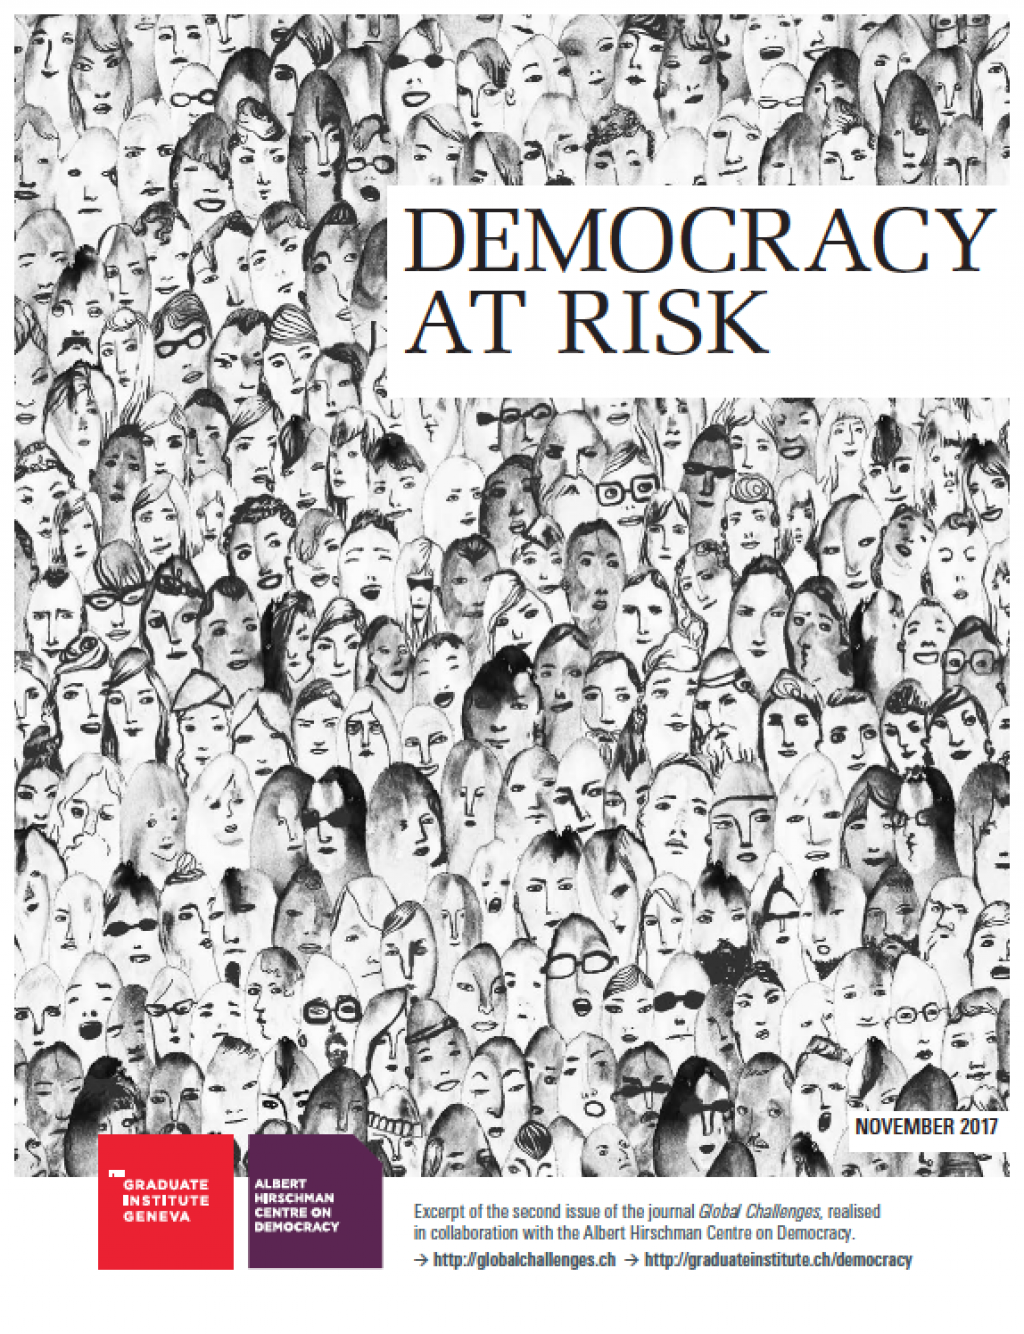 DEMOCRACY AT RISK